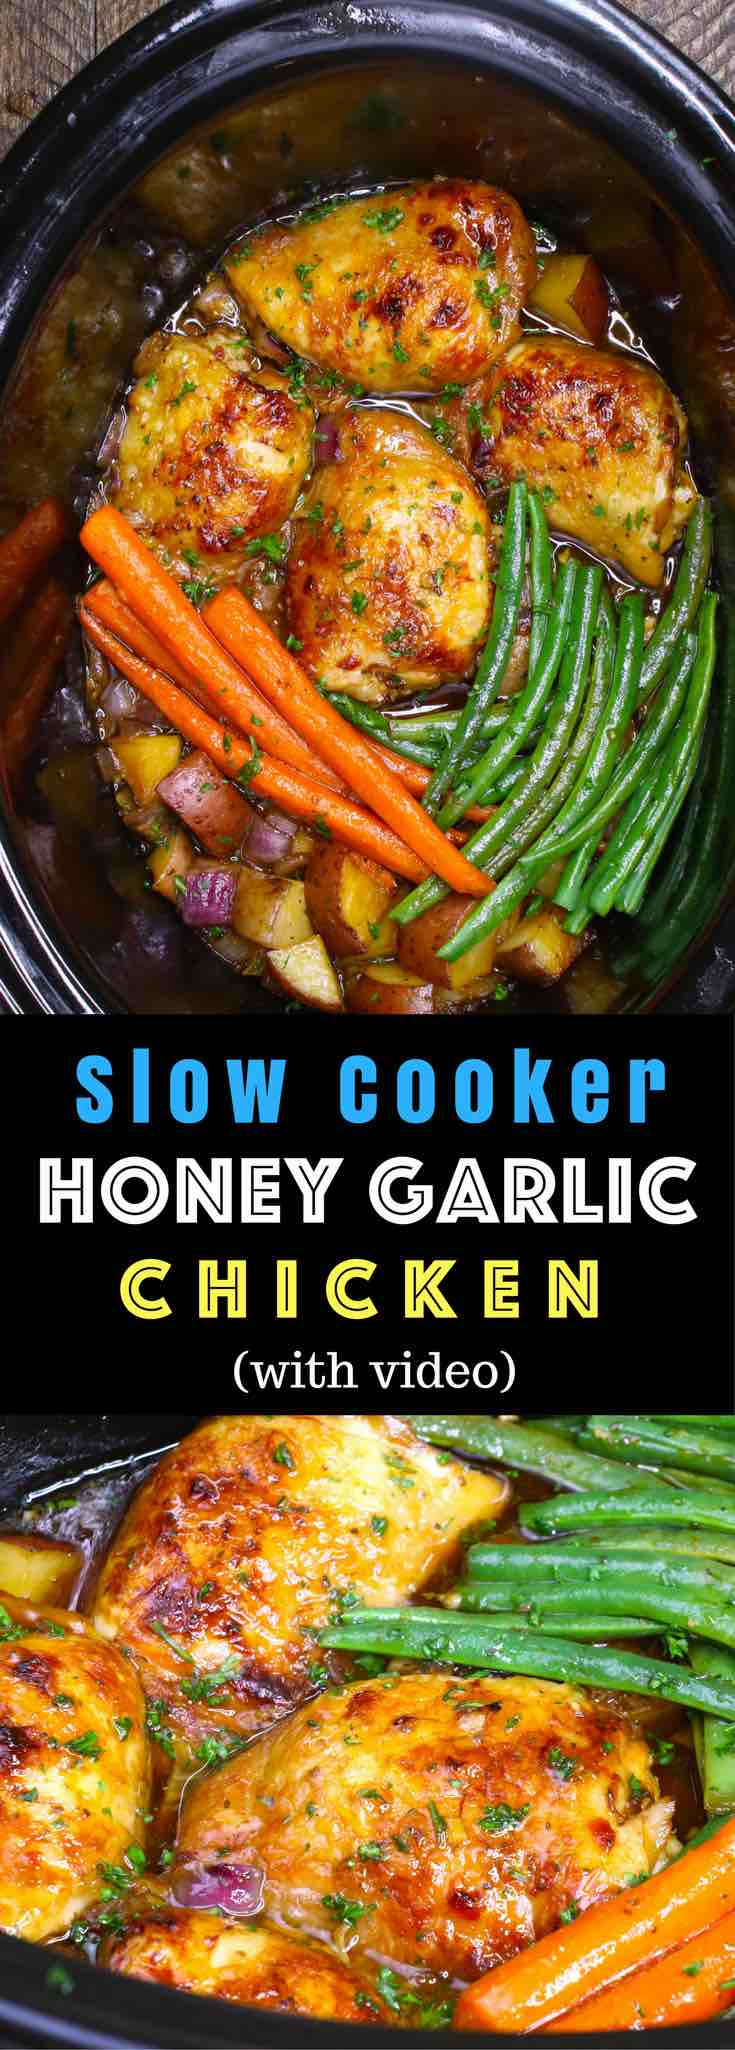 The easiest, most unbelievably delicious Slow Cooker Honey Garlic Chicken With Veggies. It's one of my favorite crock pot recipes. Succulent chicken cooked in honey, garlic, soy sauce and mixed vegetables. Preparation is an easy 15 minutes. Easy one pot recipe. #slowcooker #crockpot #SlowCookerChicken #HoneyGarlicChicken